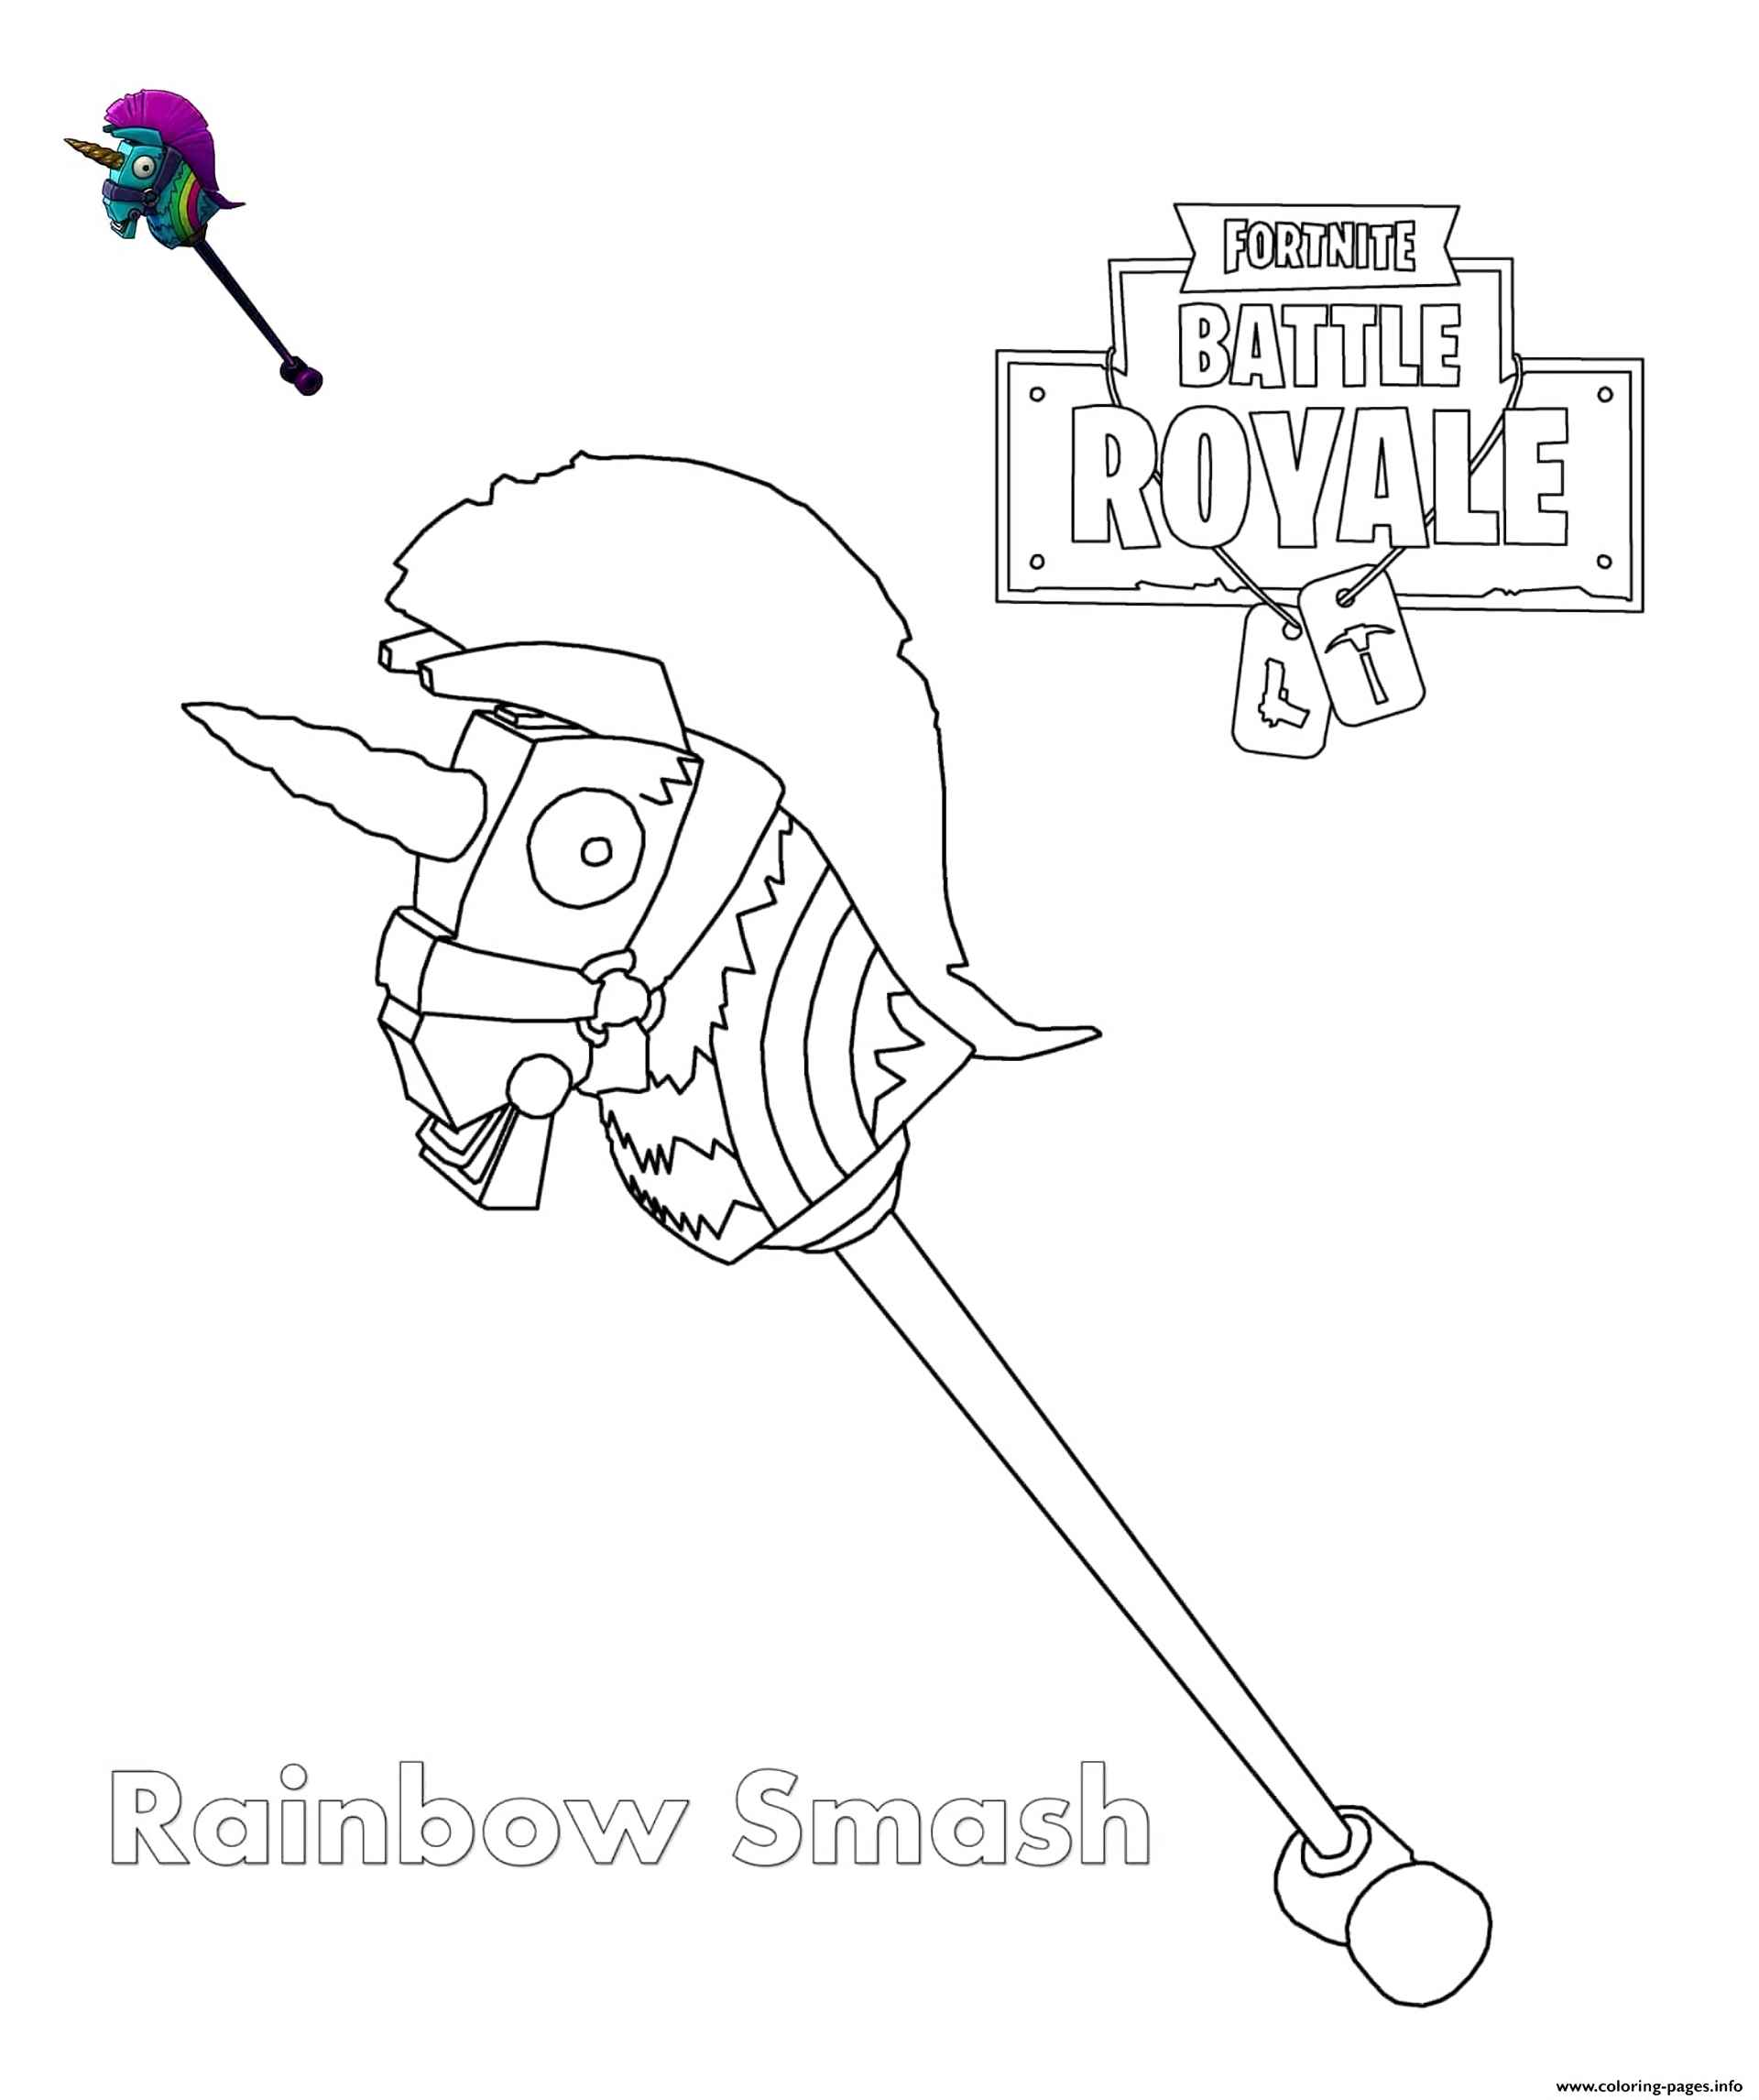 Image Of The Rainbow Smash From The Game Fortnite